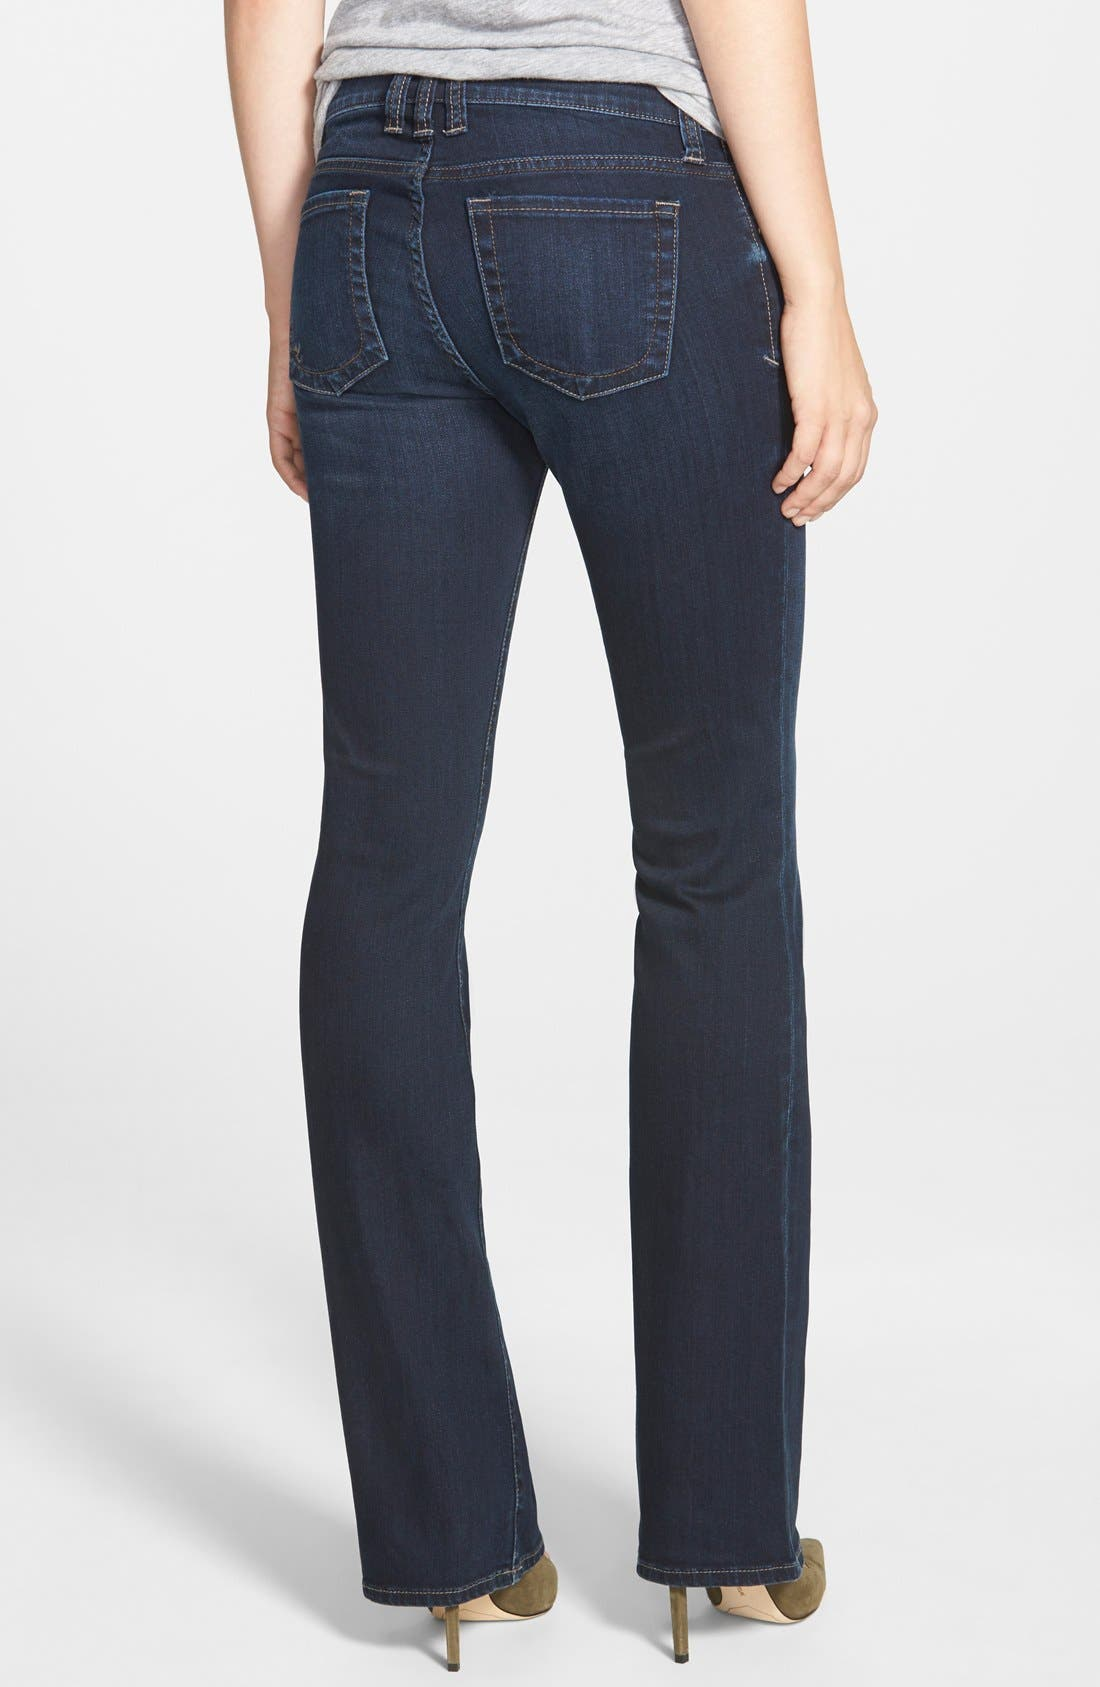 'Natalie' Stretch Bootcut Jeans,                             Alternate thumbnail 2, color,                             Beneficial